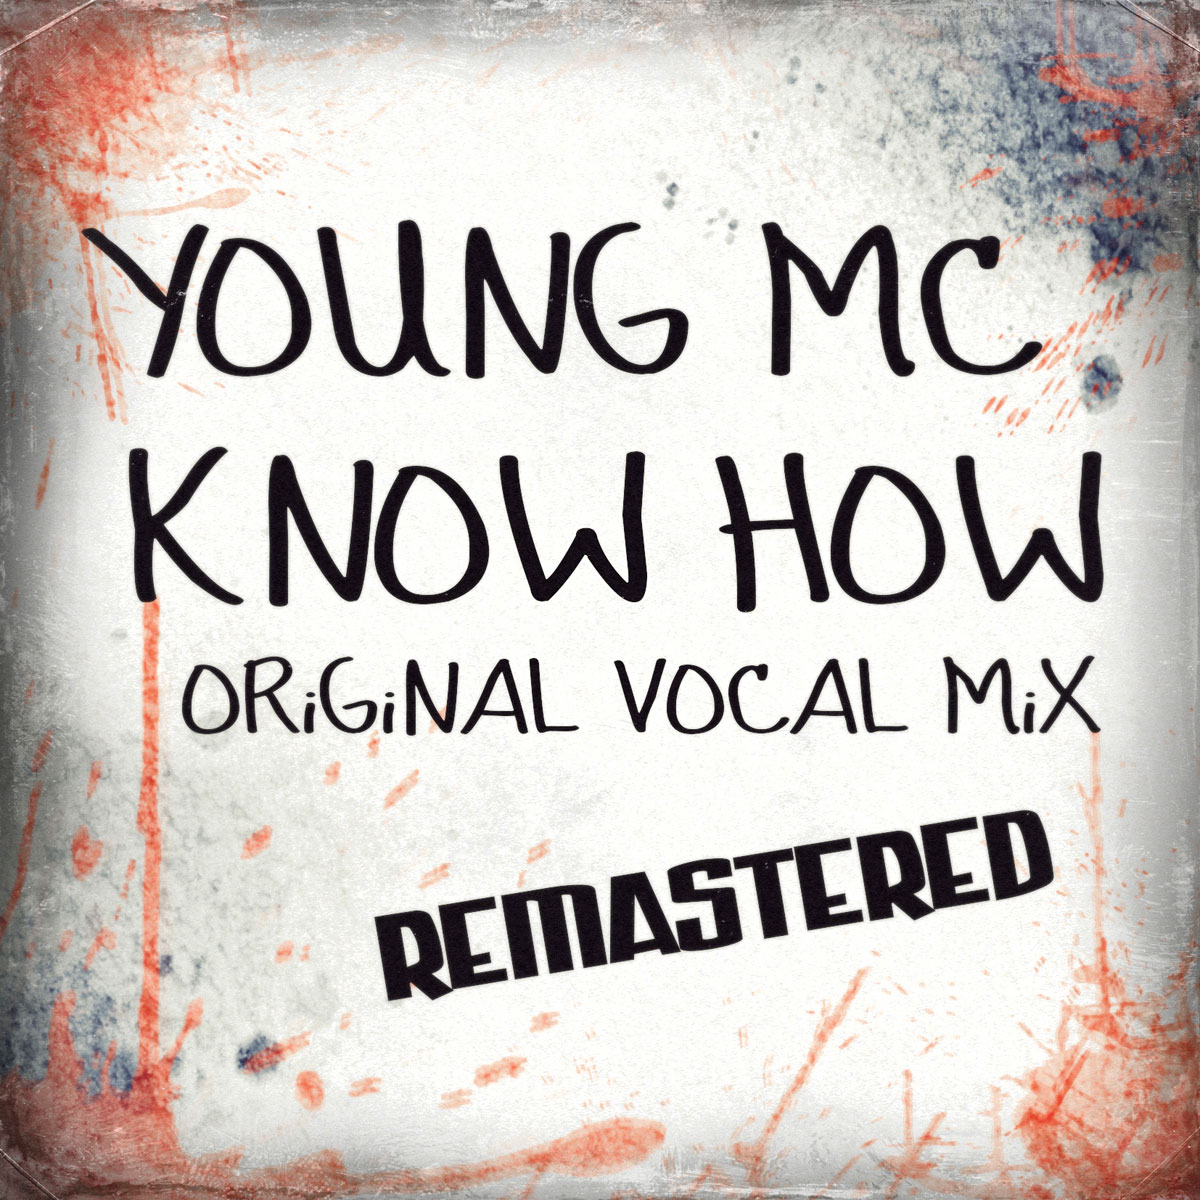 Young-mc-remastered1200